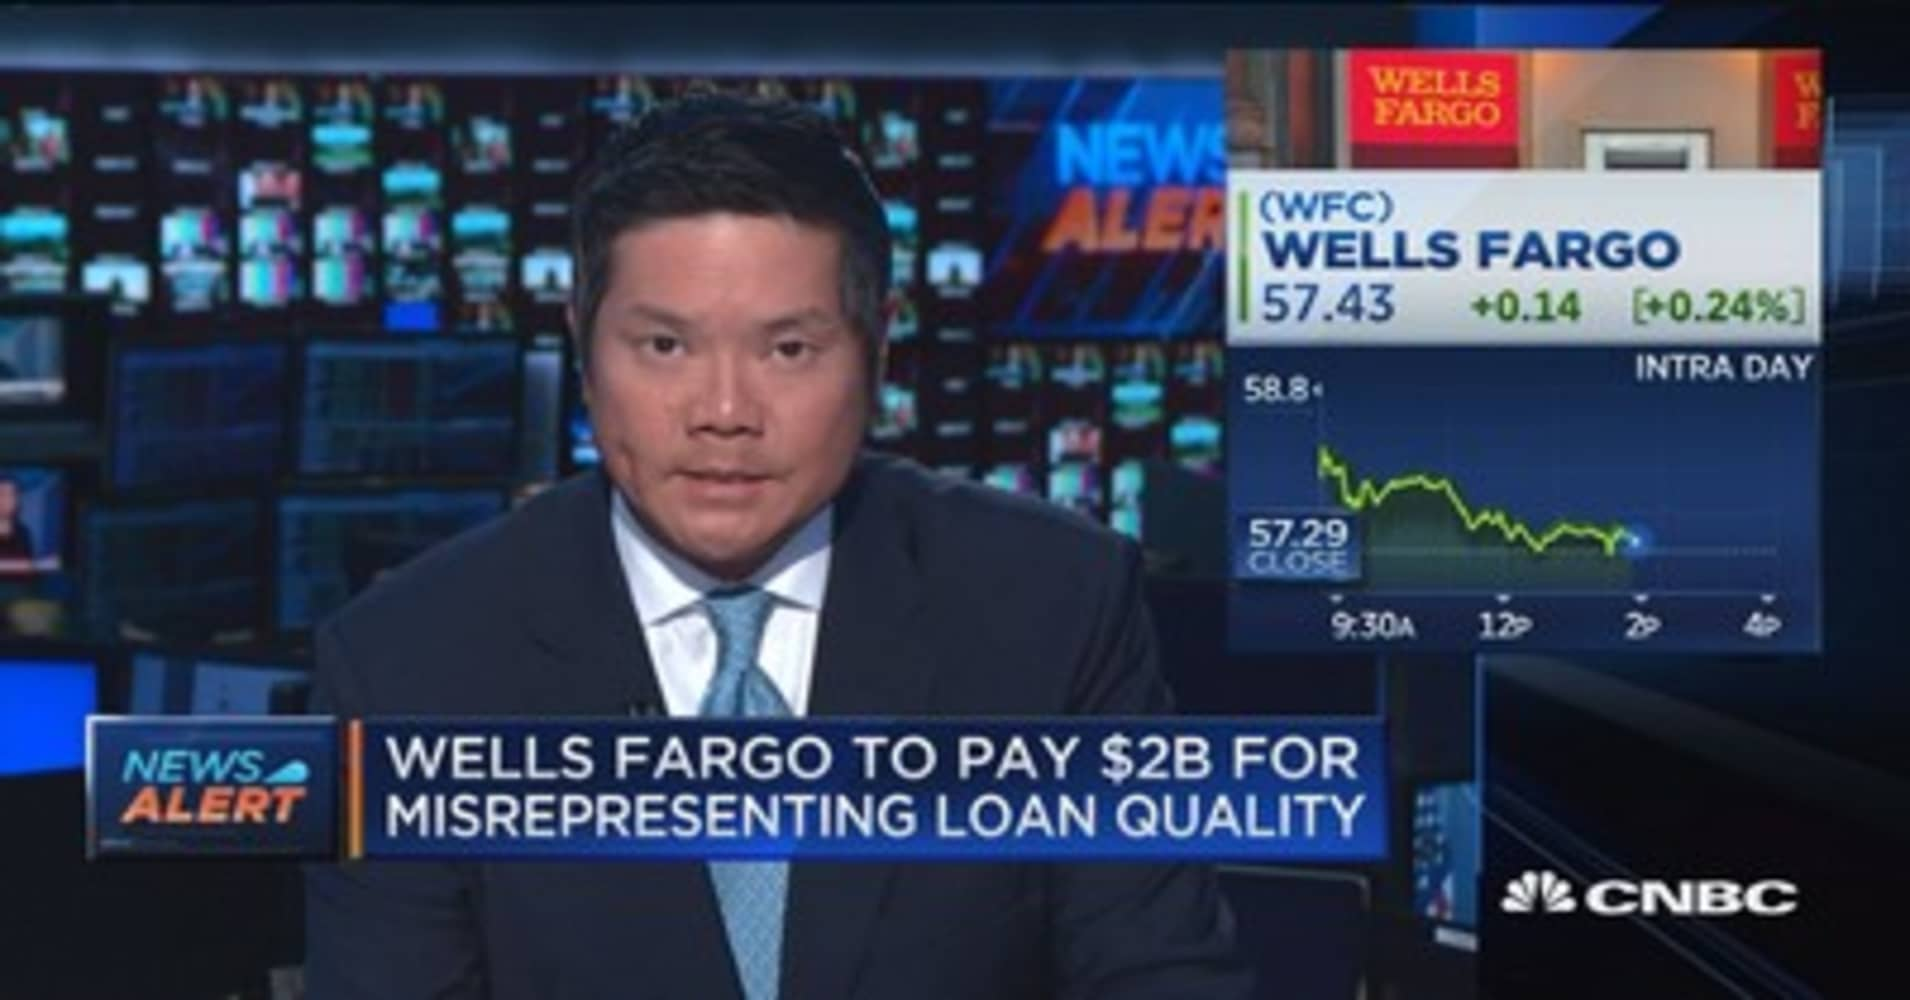 Wells Fargo to pay $2 09 billion for misrepresenting loan quality